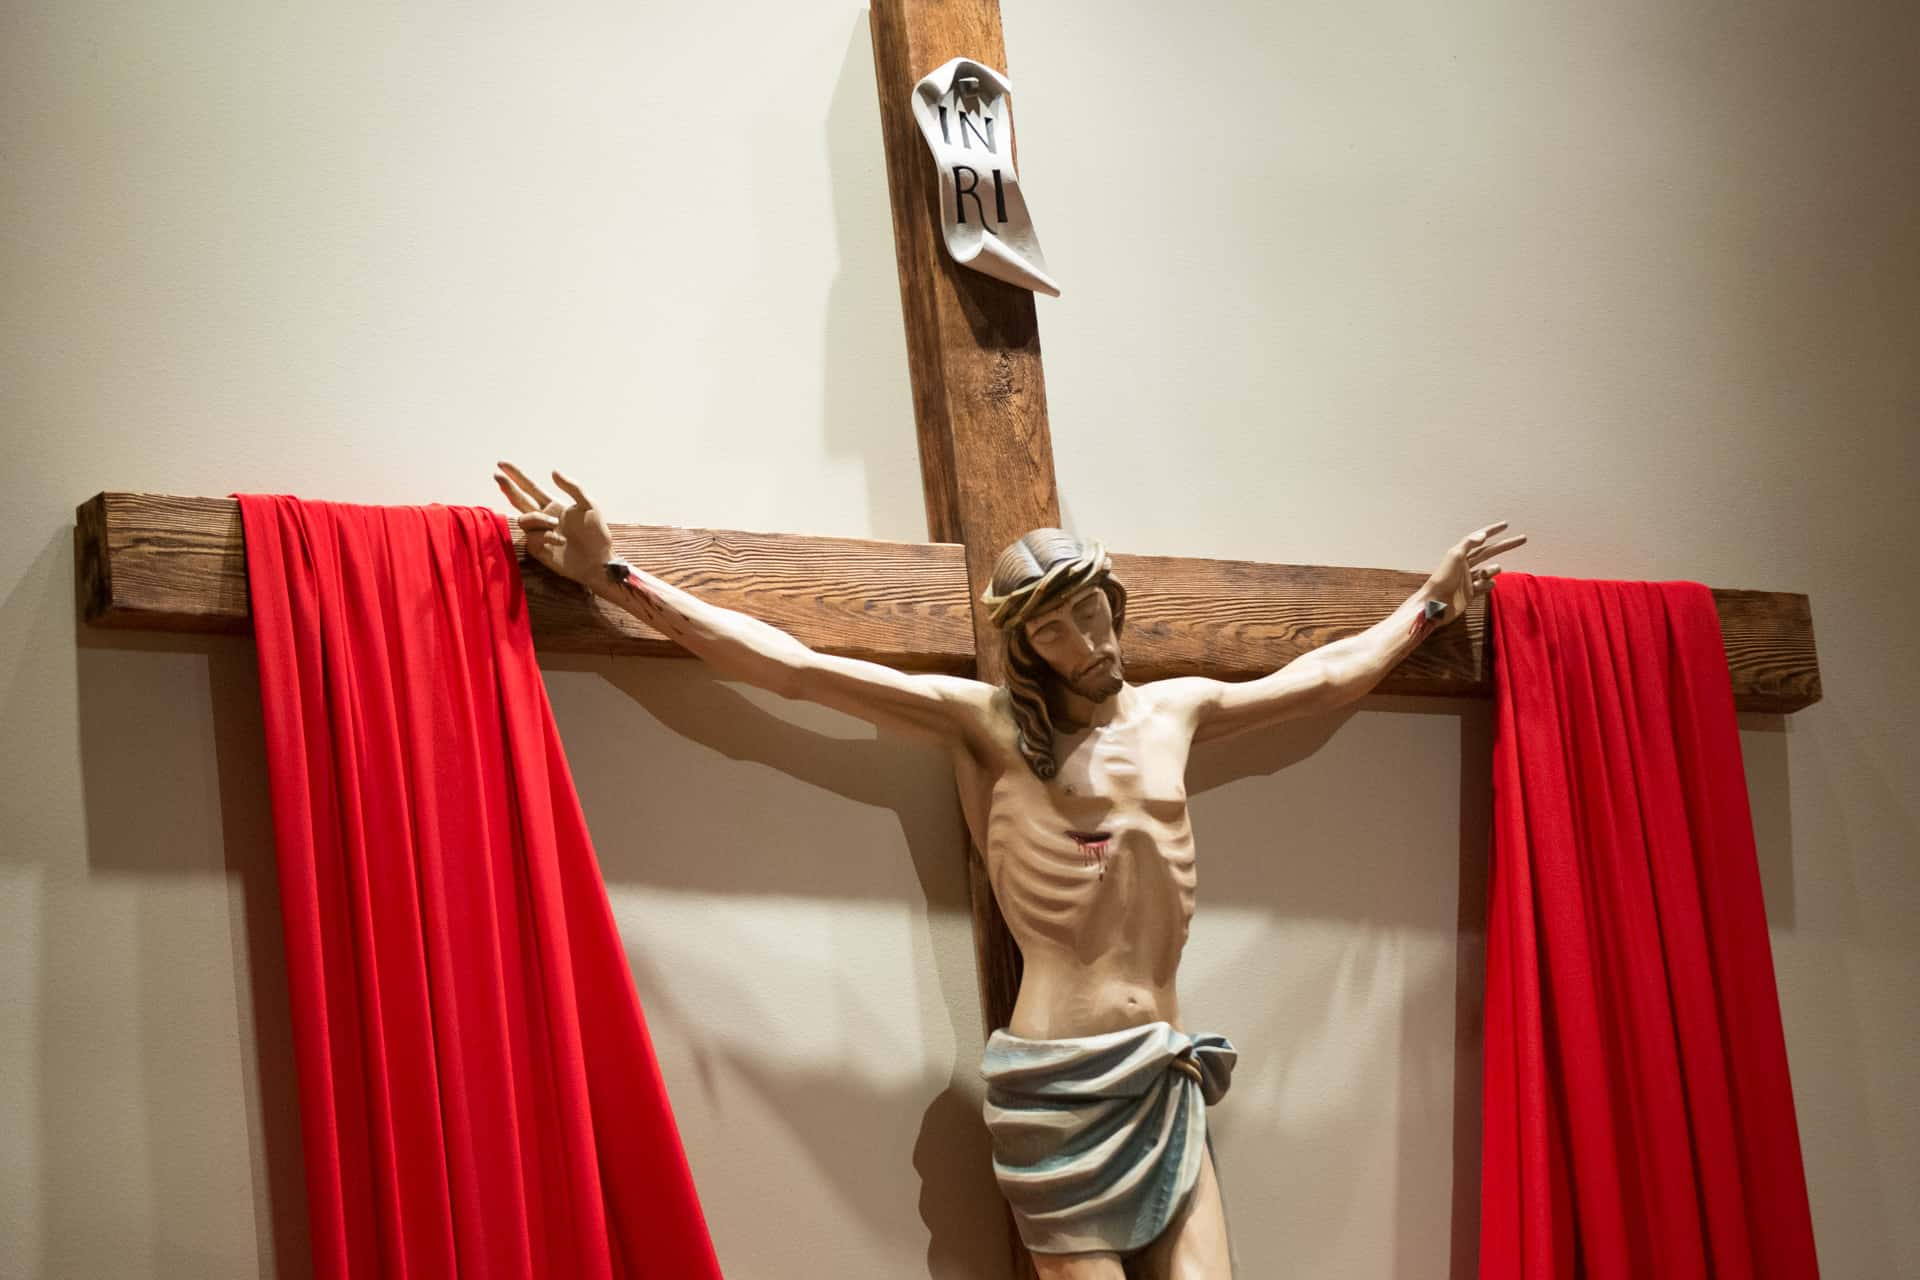 Crucifix with red cloth draped on it